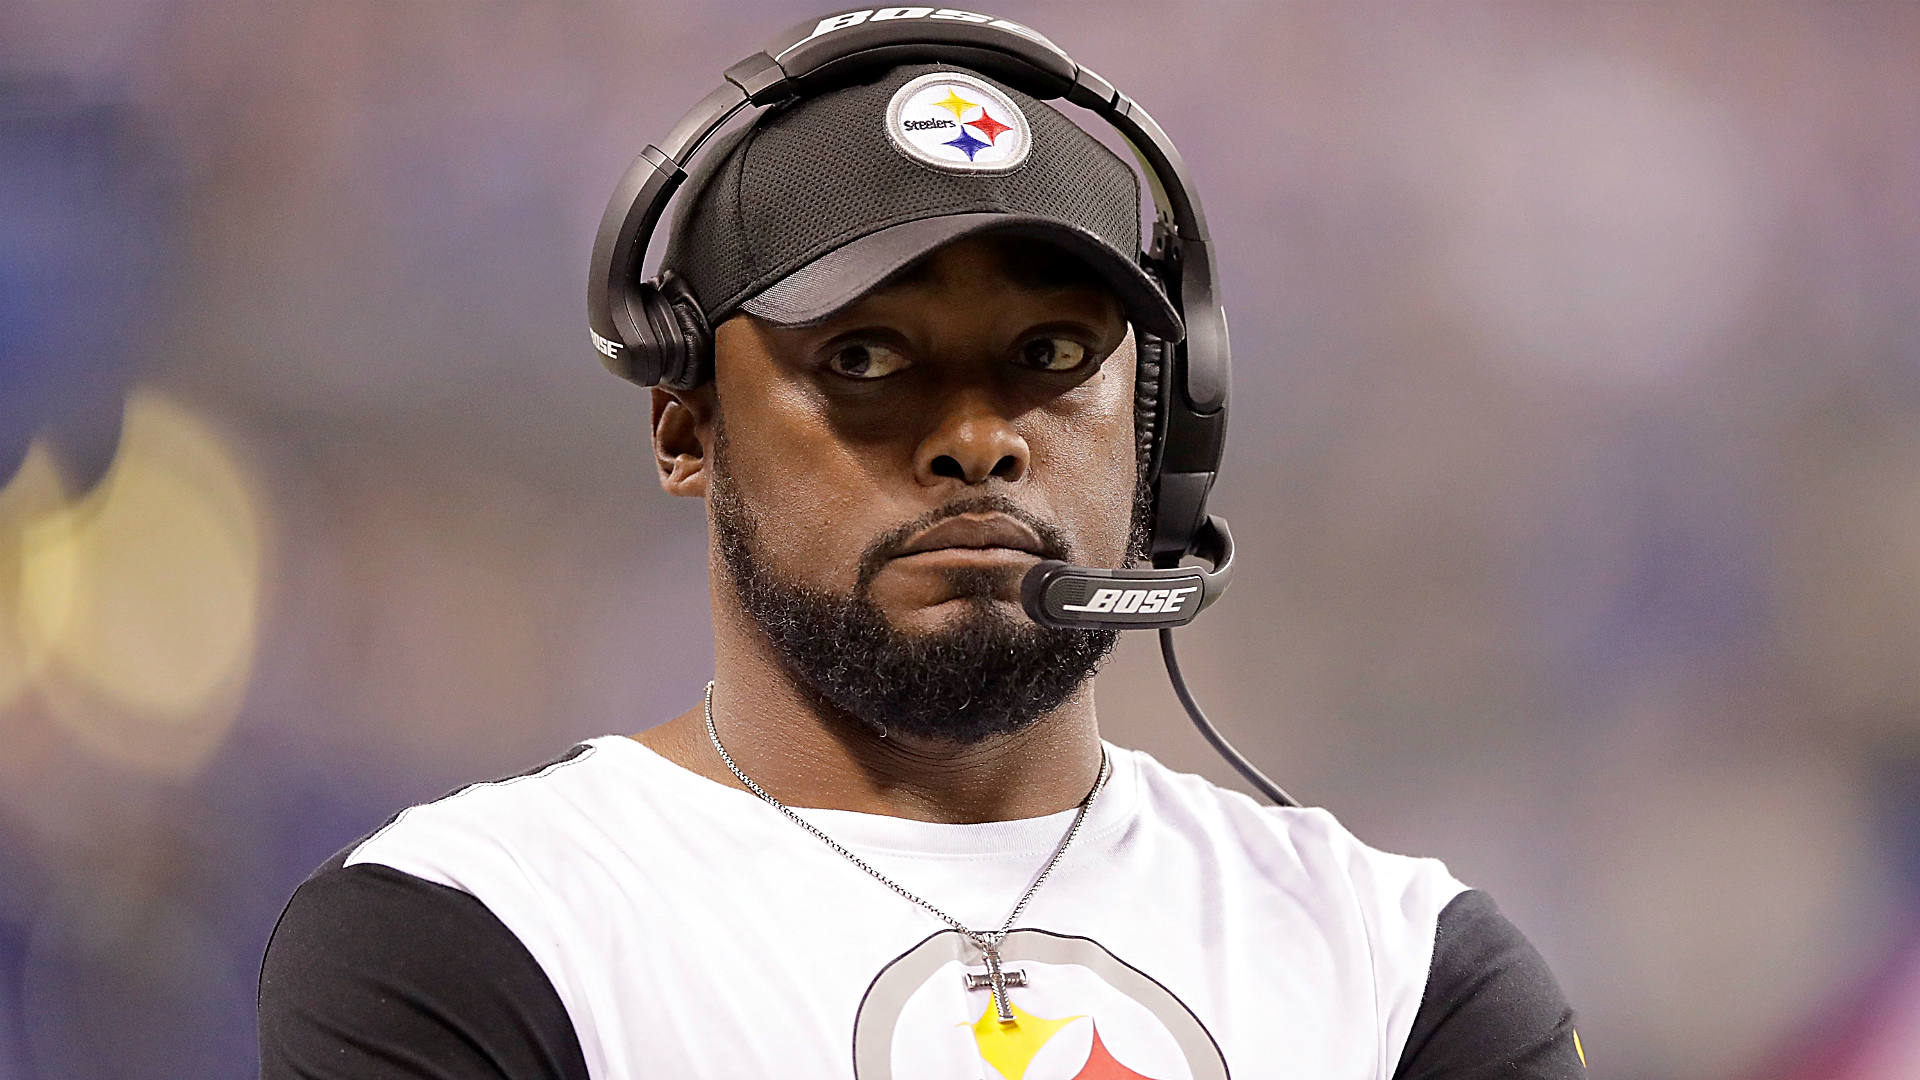 Steelers will remain in locker room for national anthem in Chicago, Mike Tomlin says